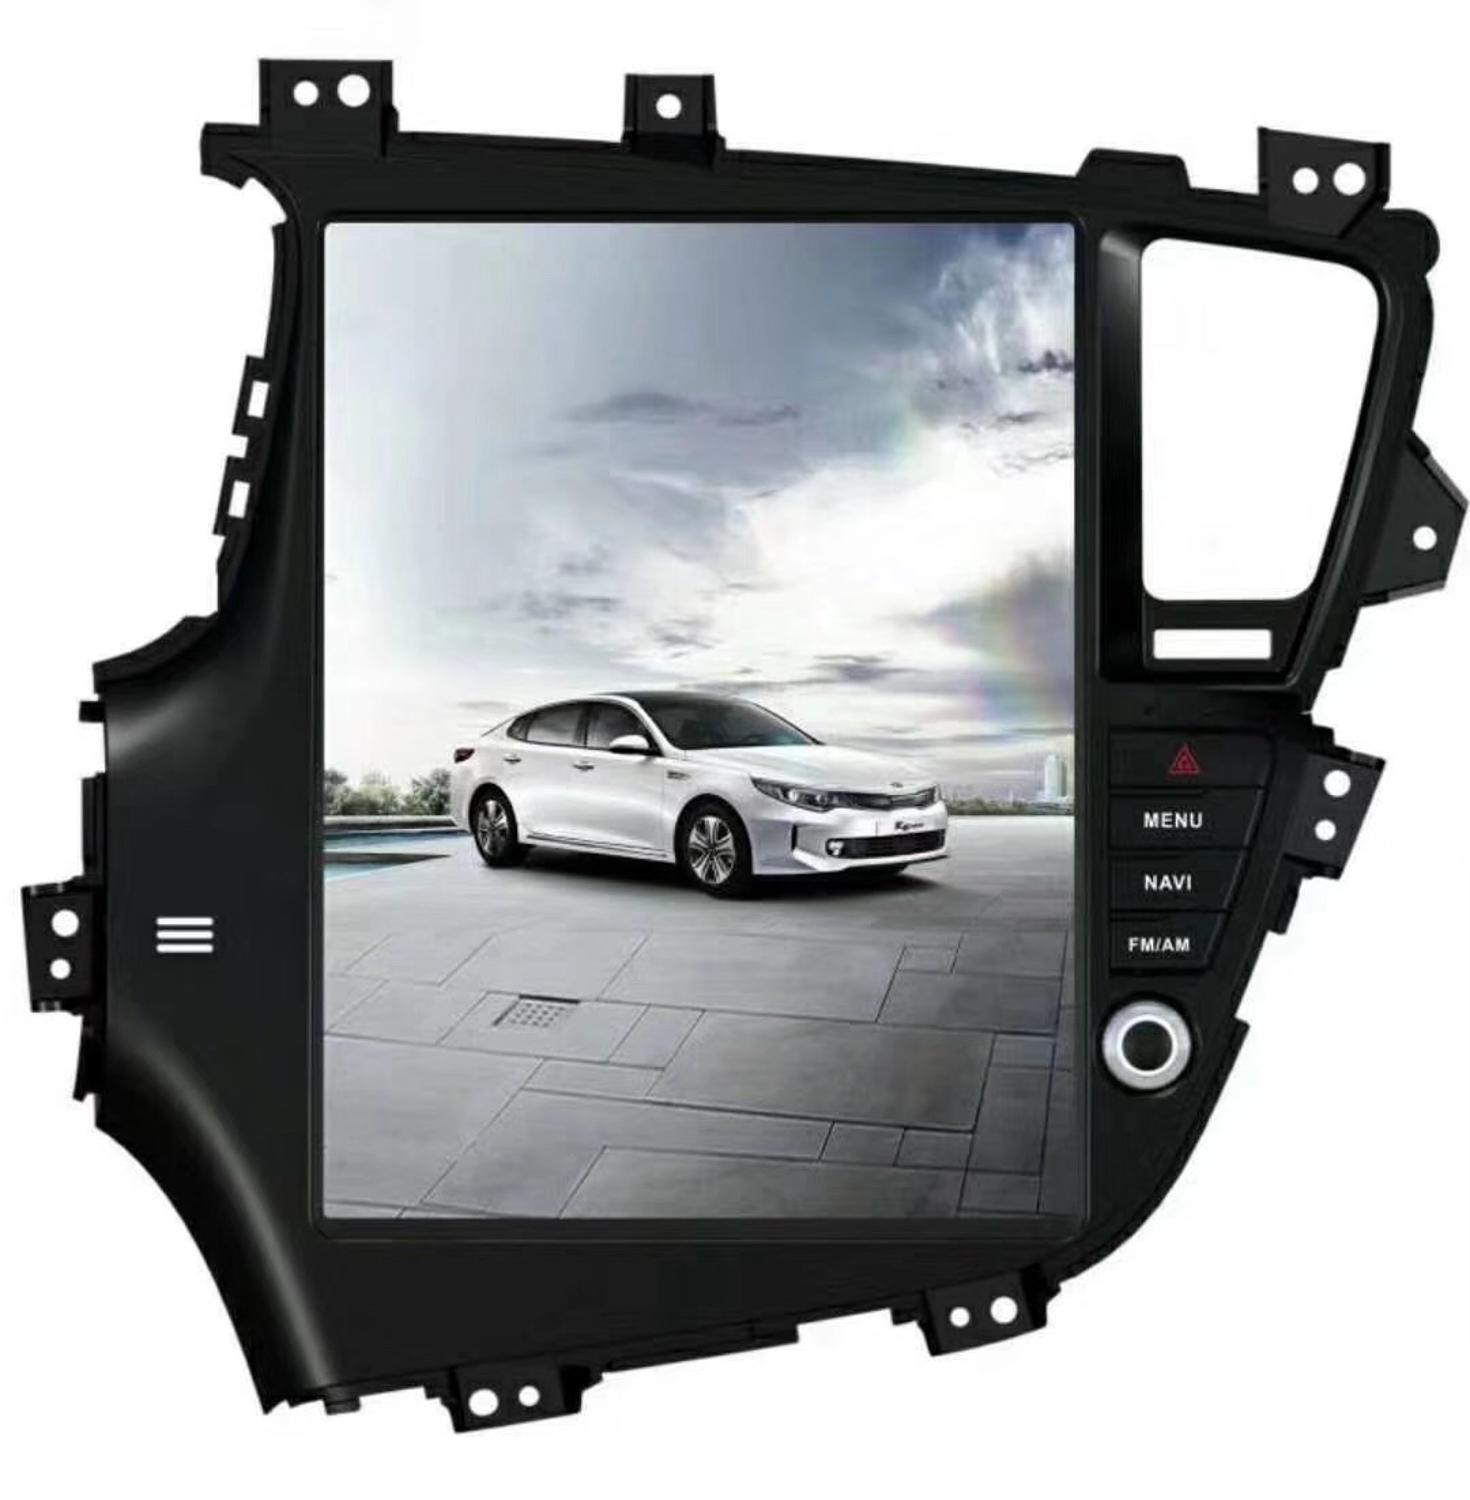 Chogath Car Multimedia Player Android 7.1 Car Gps Navigation 12.1inch 2+32G Tesla Screen For Kia 2011-2018/optima 2011-2018